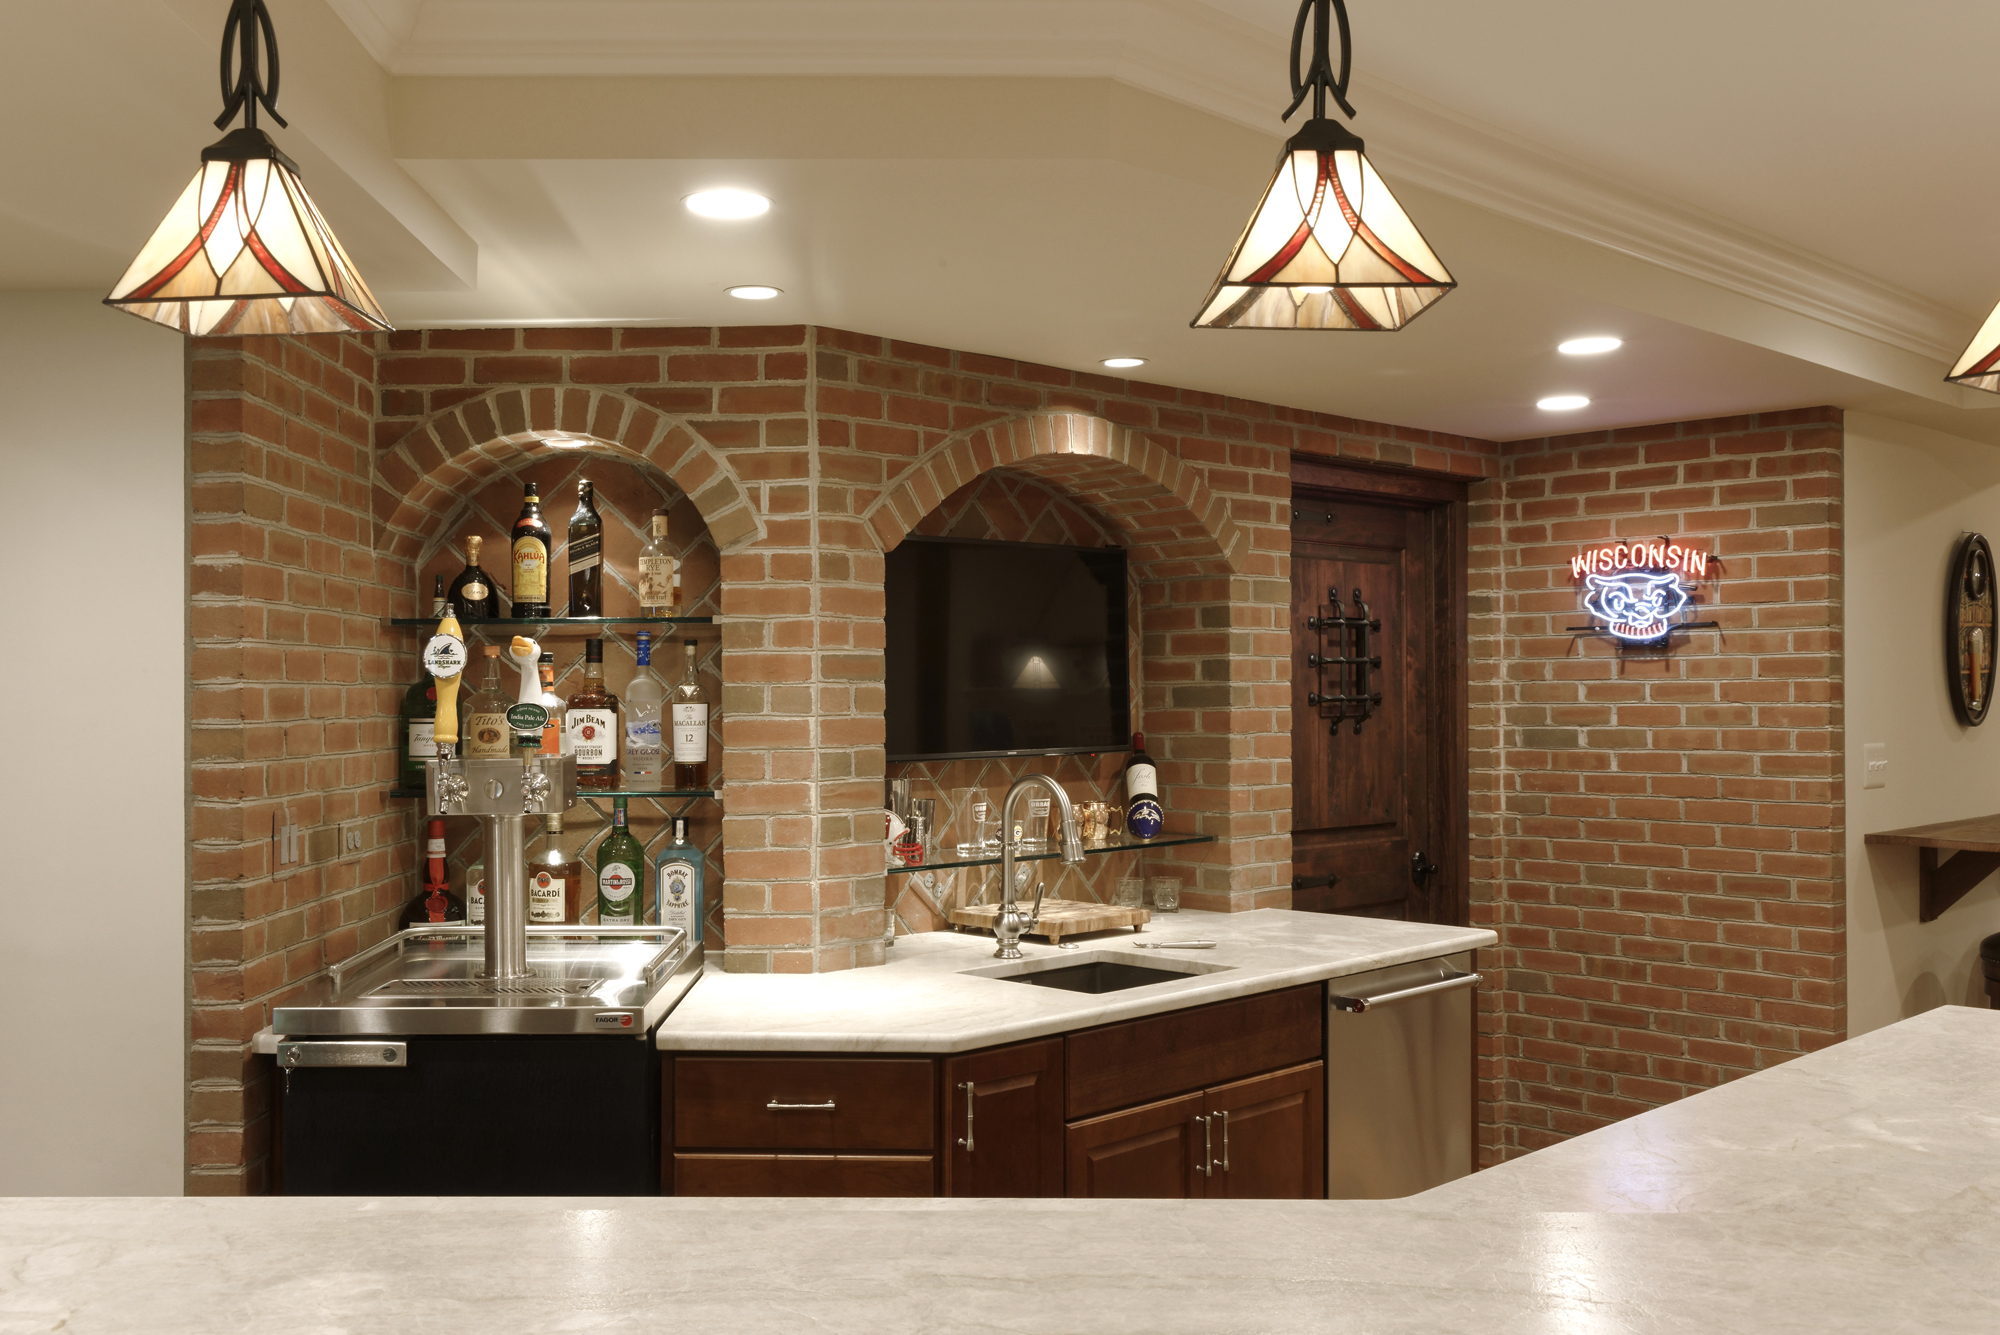 Basement Remodel In Mclean Perfect For Entertaining Bowa Wiring Return To Our Featured Project Profiles